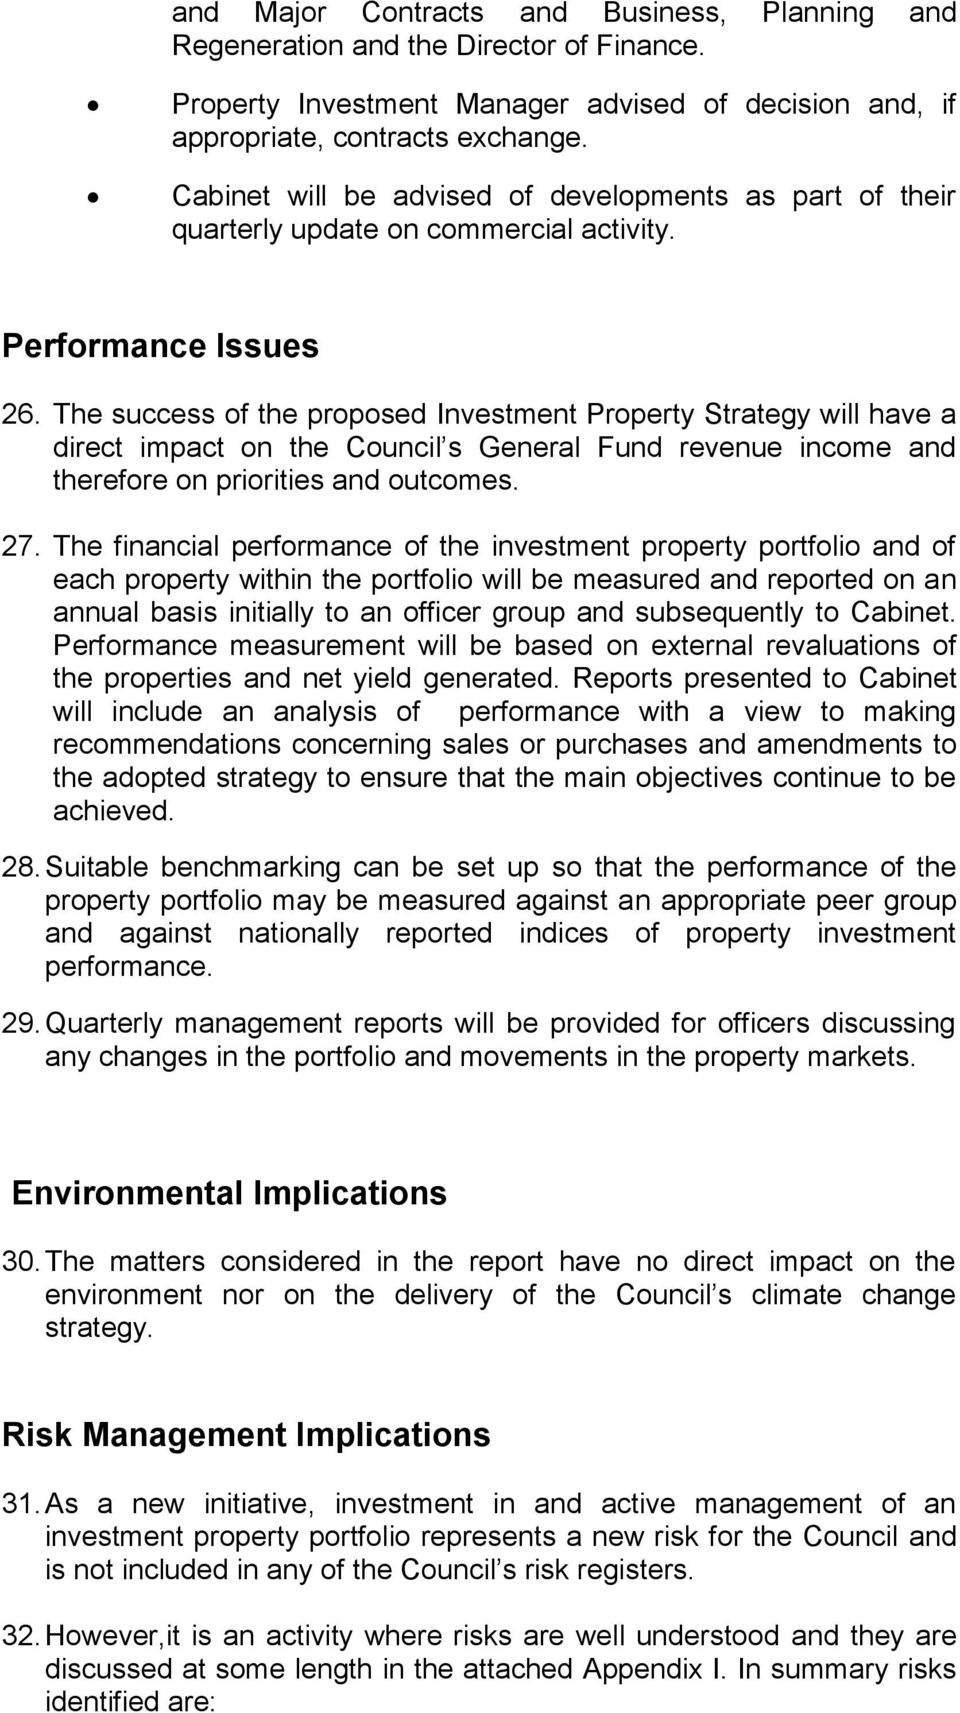 The success of the proposed Investment Property Strategy will have a direct impact on the Council s General Fund revenue income and therefore on priorities and outcomes. 27.